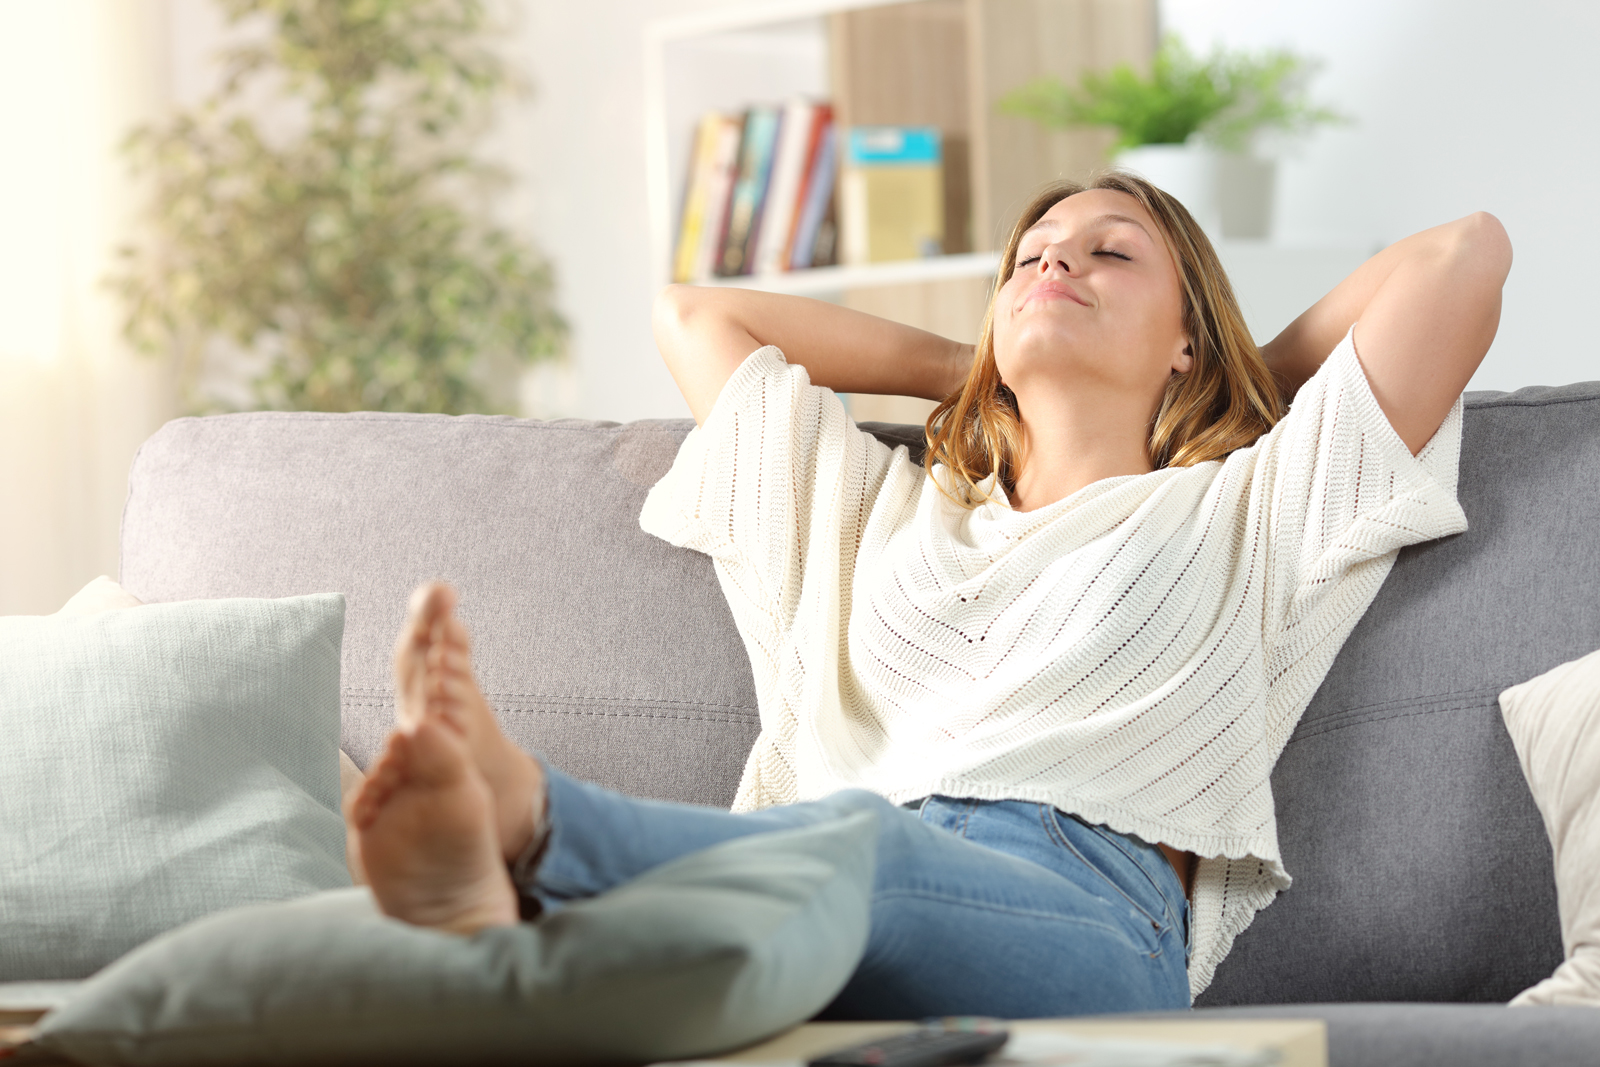 Get Peace Of Mind While Staying At Home With Healthy Air & Water